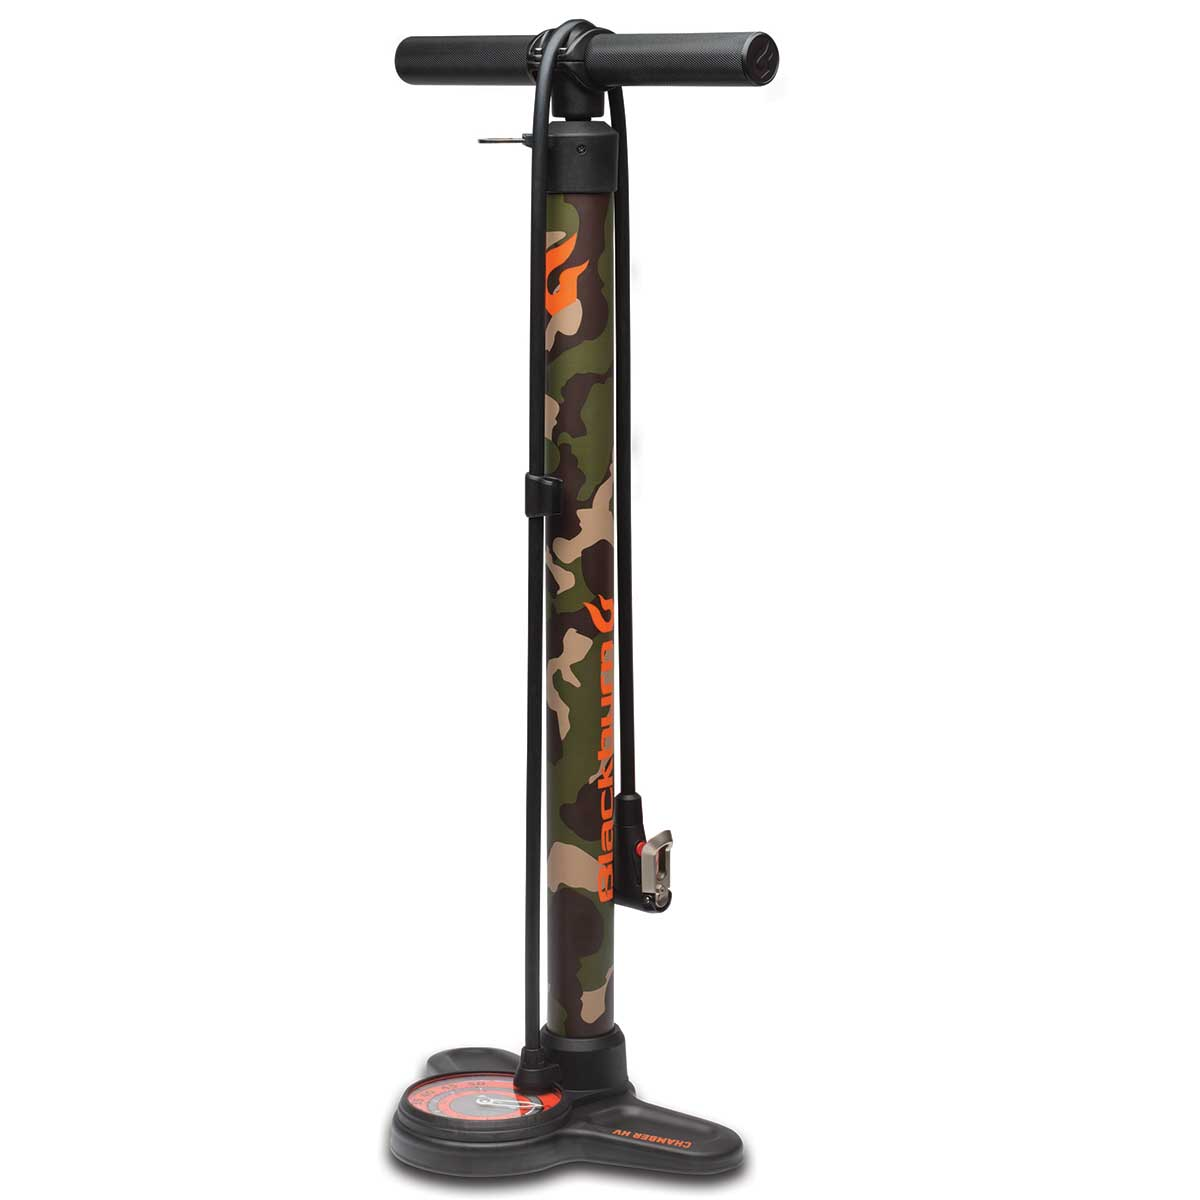 Blackburn Chamber HV Floor Pump in Camo